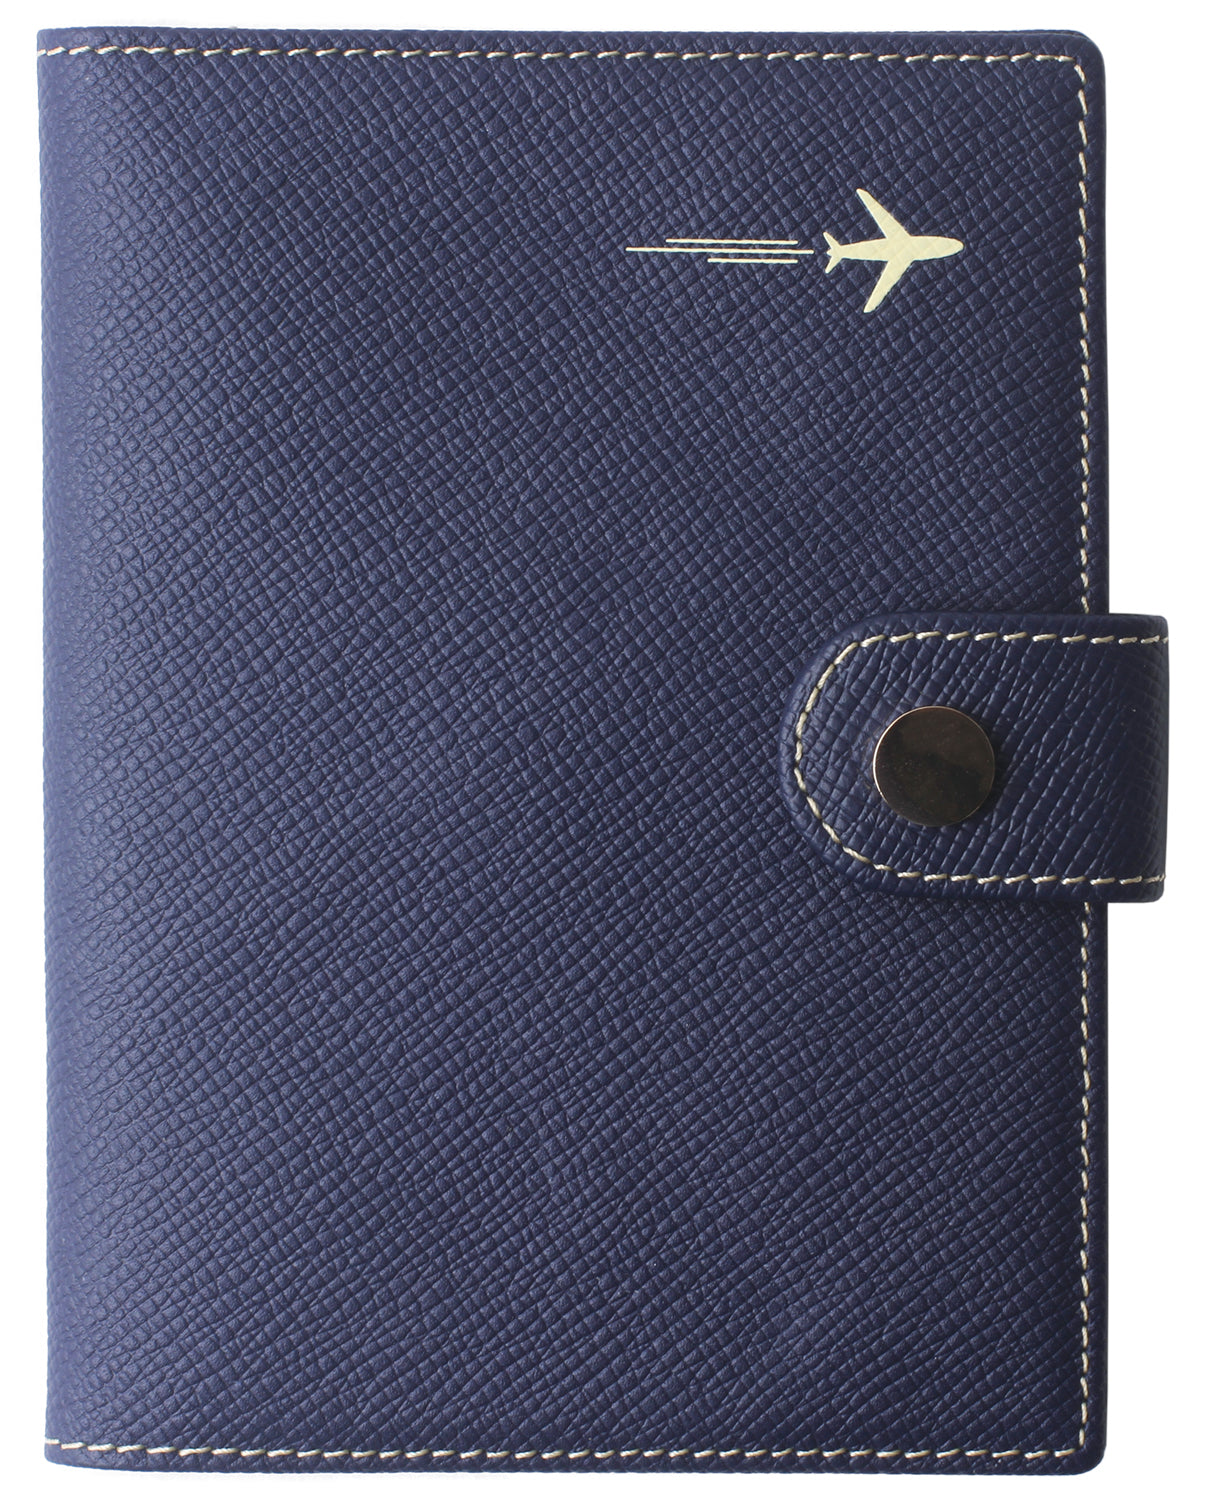 Leather Rfid Blocking Travel Passport Holder Cover Slim ID Card Case Wallet Crosshatch BG1233 Blue - Borgasets